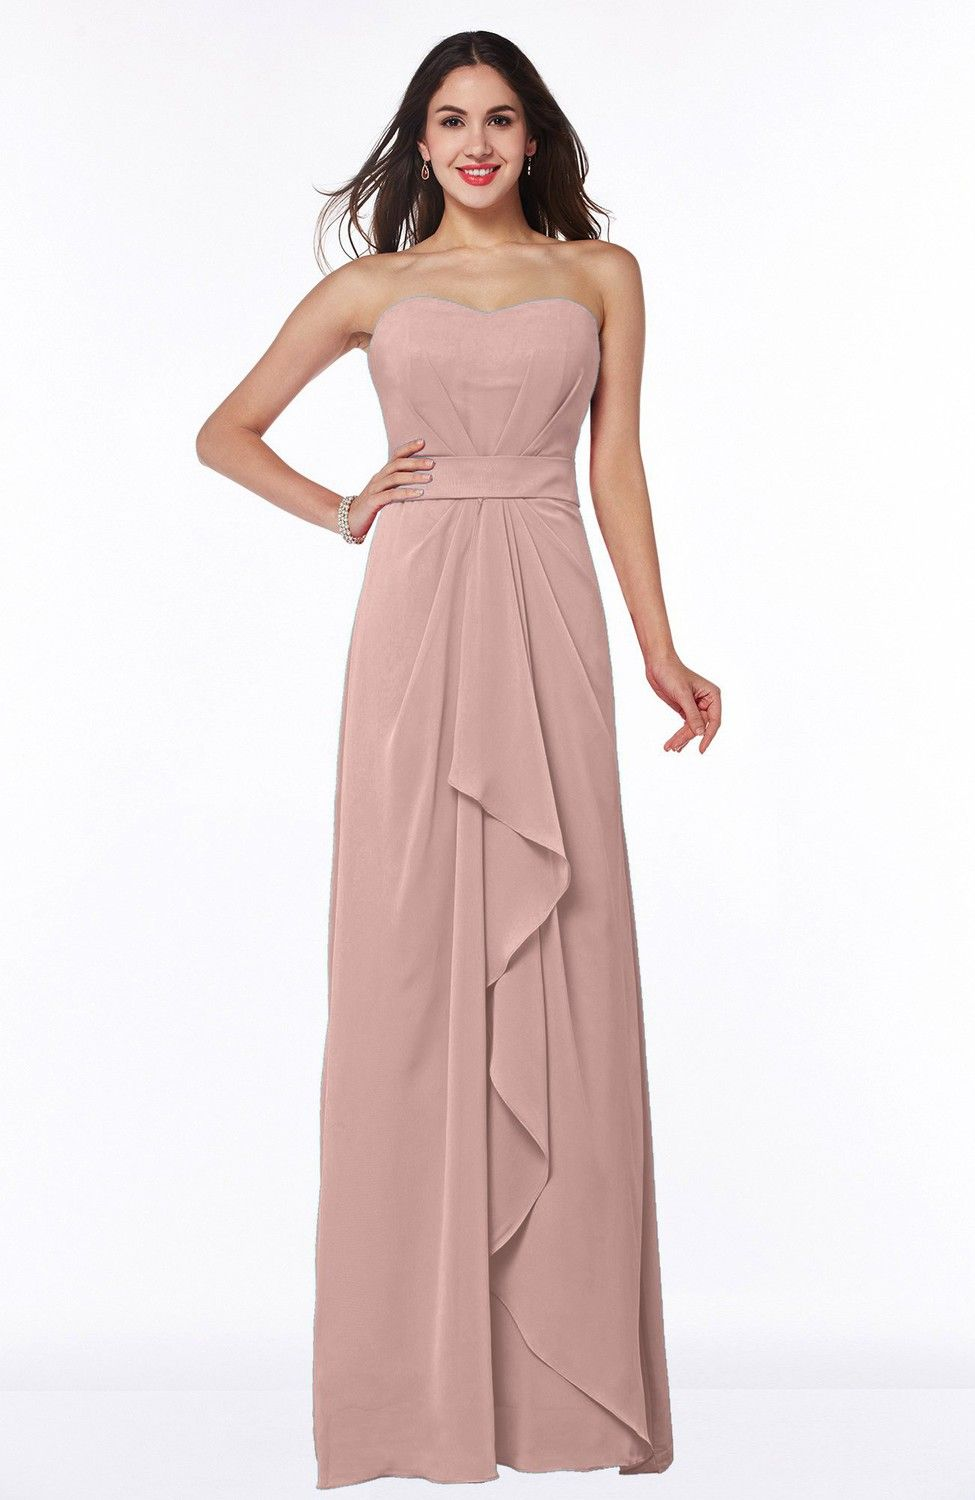 Dusty Rose Bridesmaid Dress - Traditional Strapless Zip up Chiffon ...